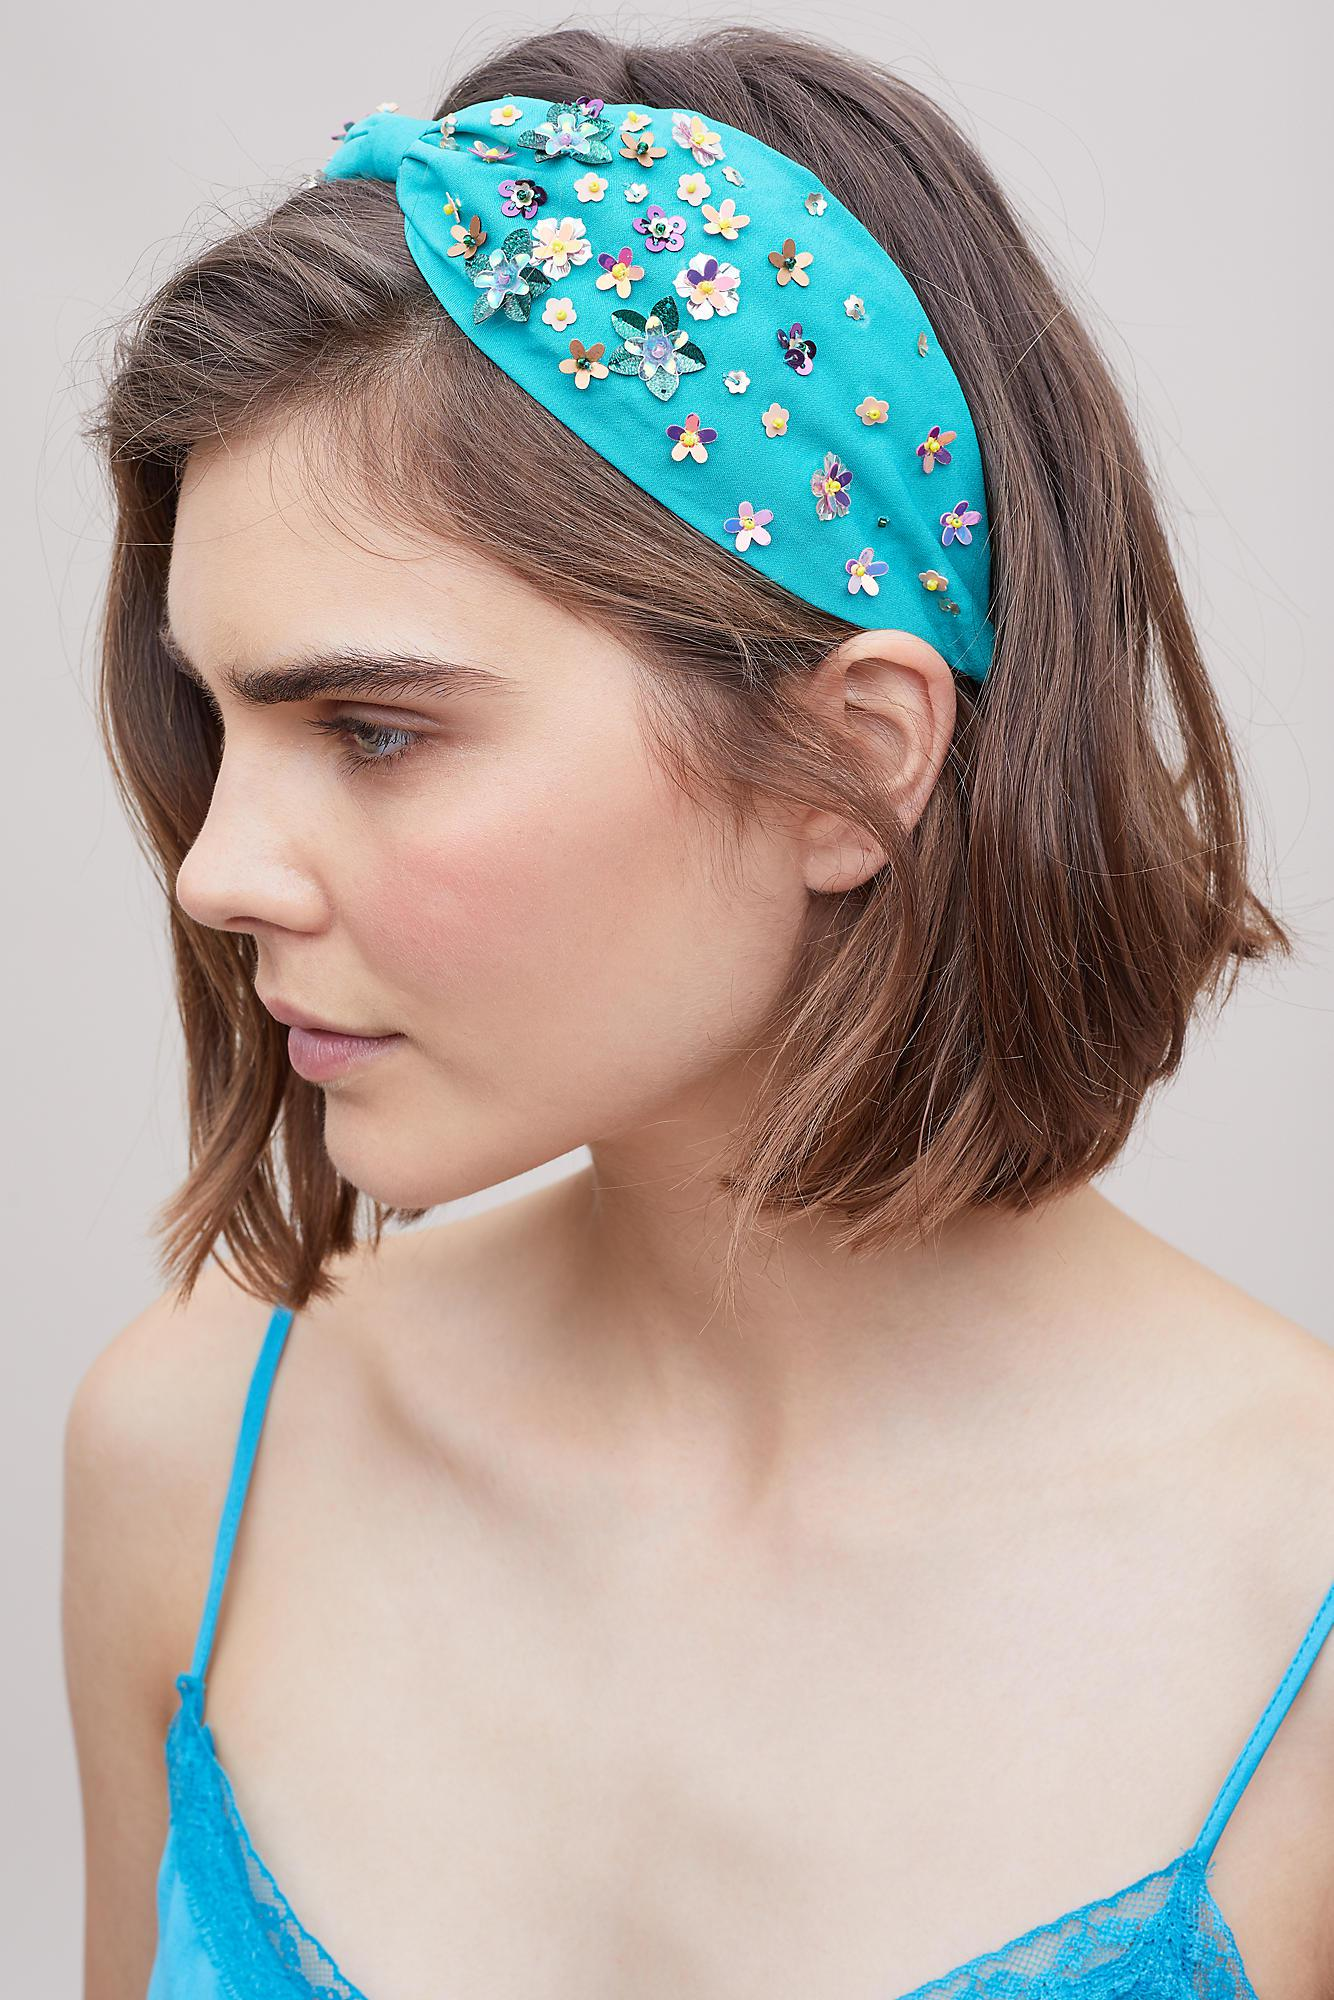 Anthropologie Floral Embellished Headband in Blue - Lyst 8274a8f8321